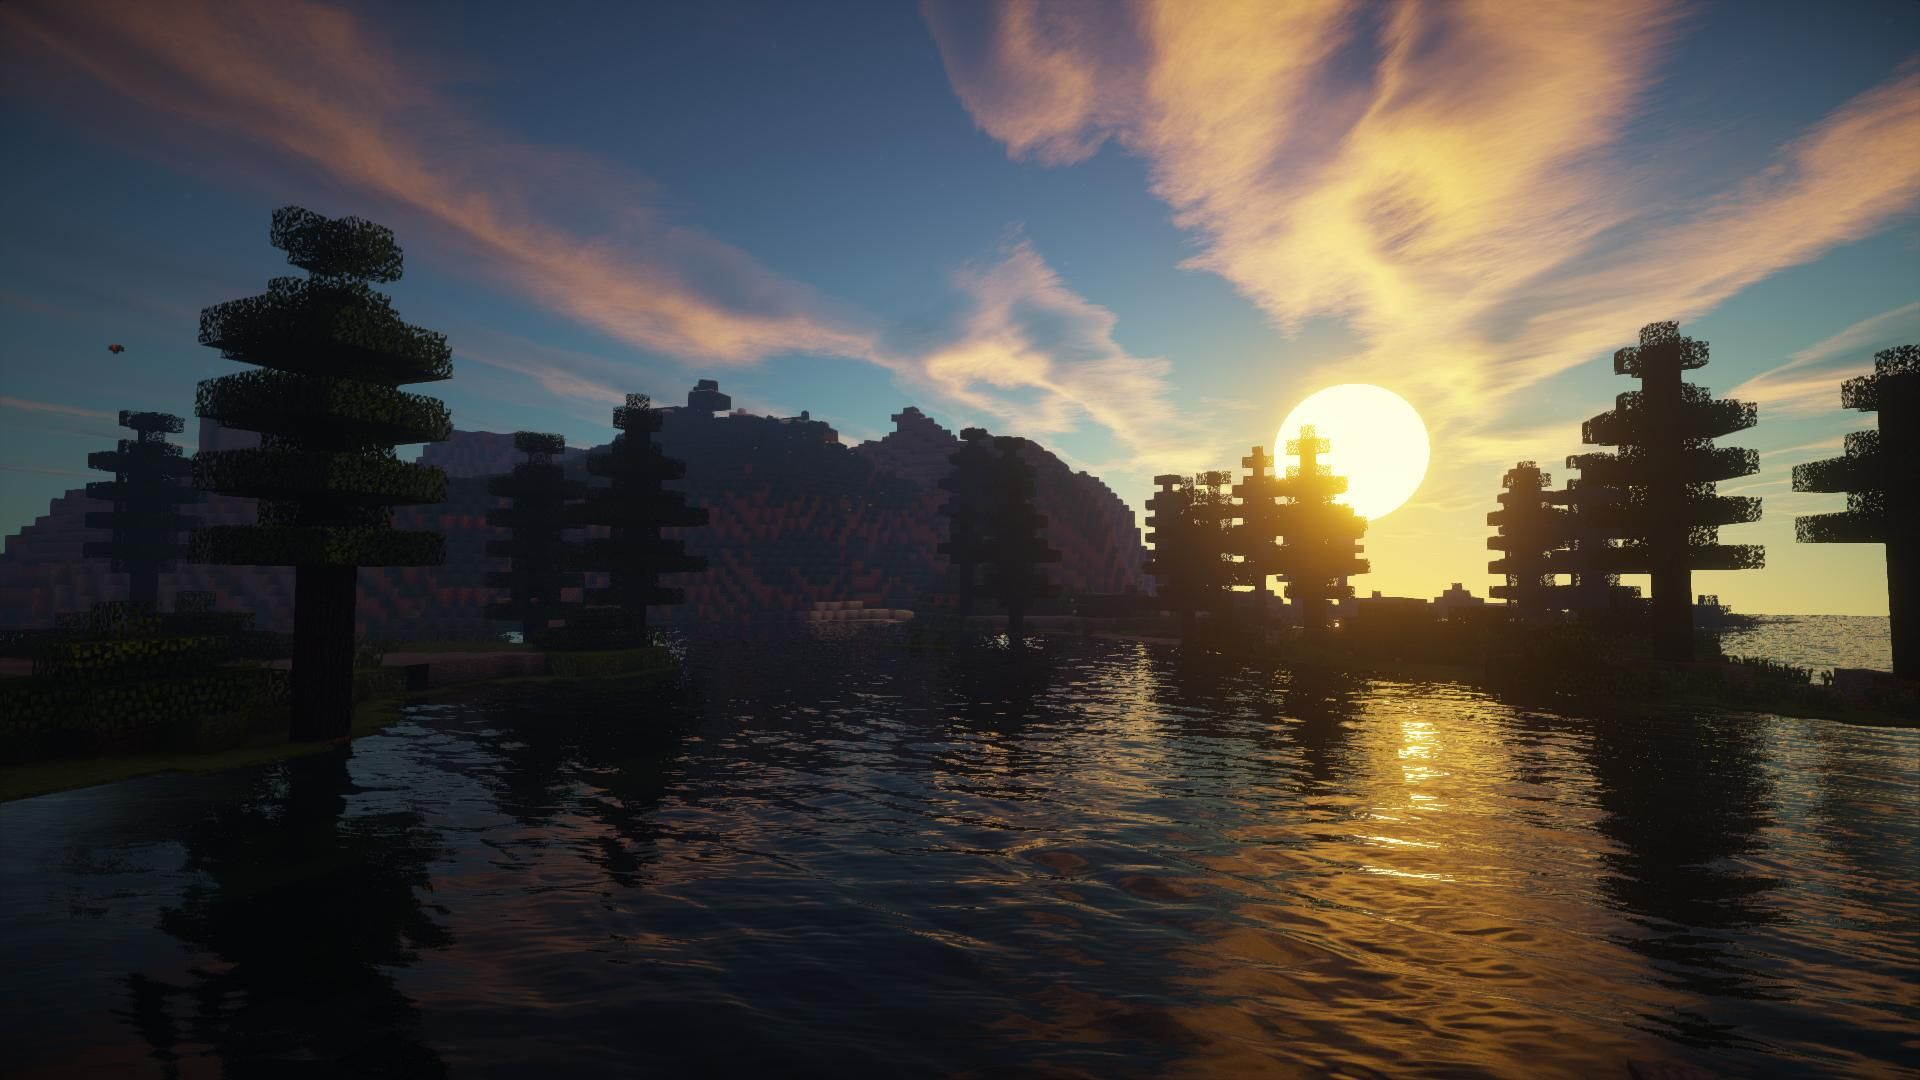 minecraft shaders mod pic of rain Google Search Fondos